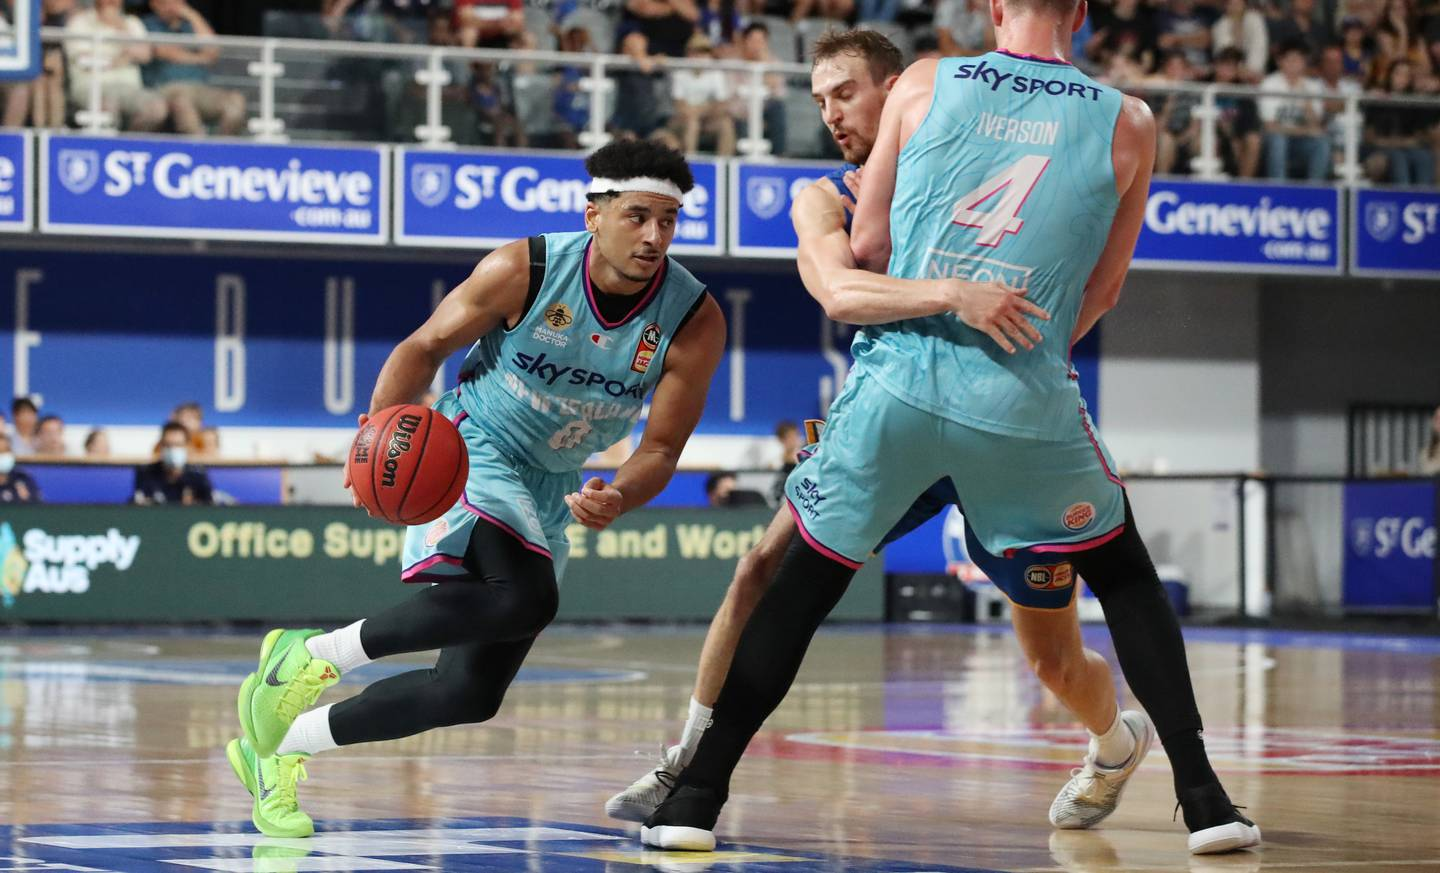 BRISBANE, AUSTRALIA - MARCH 27: Tai Webster of the Breakers with the ball during the round 11 NBL match between the Brisbane Bullets and the New Zealand Breakers at Nissan Arena on March 27, 2021 in Brisbane, Australia. (Photo by Glenn Hunt/Getty Images)